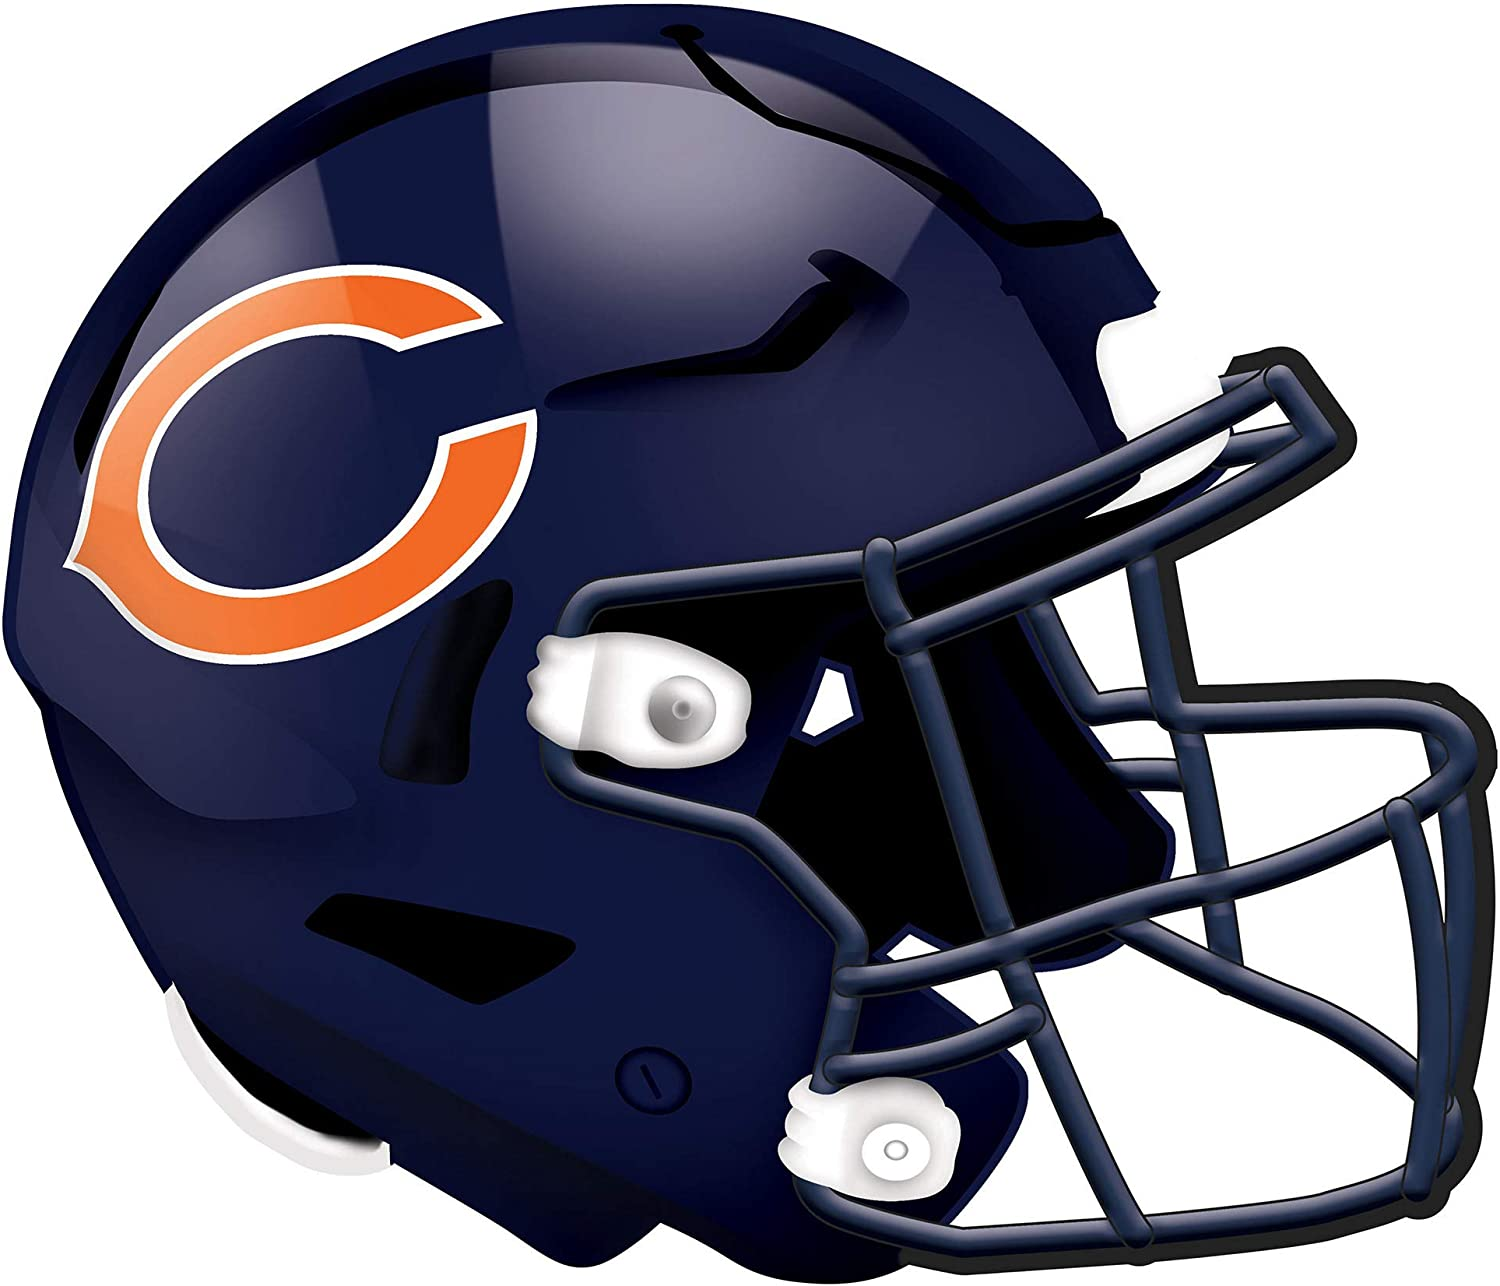 Fan Creations NFL Chicago Bears Unisex Chicago Bears Authentic Helmet, Team Color, 12 inch